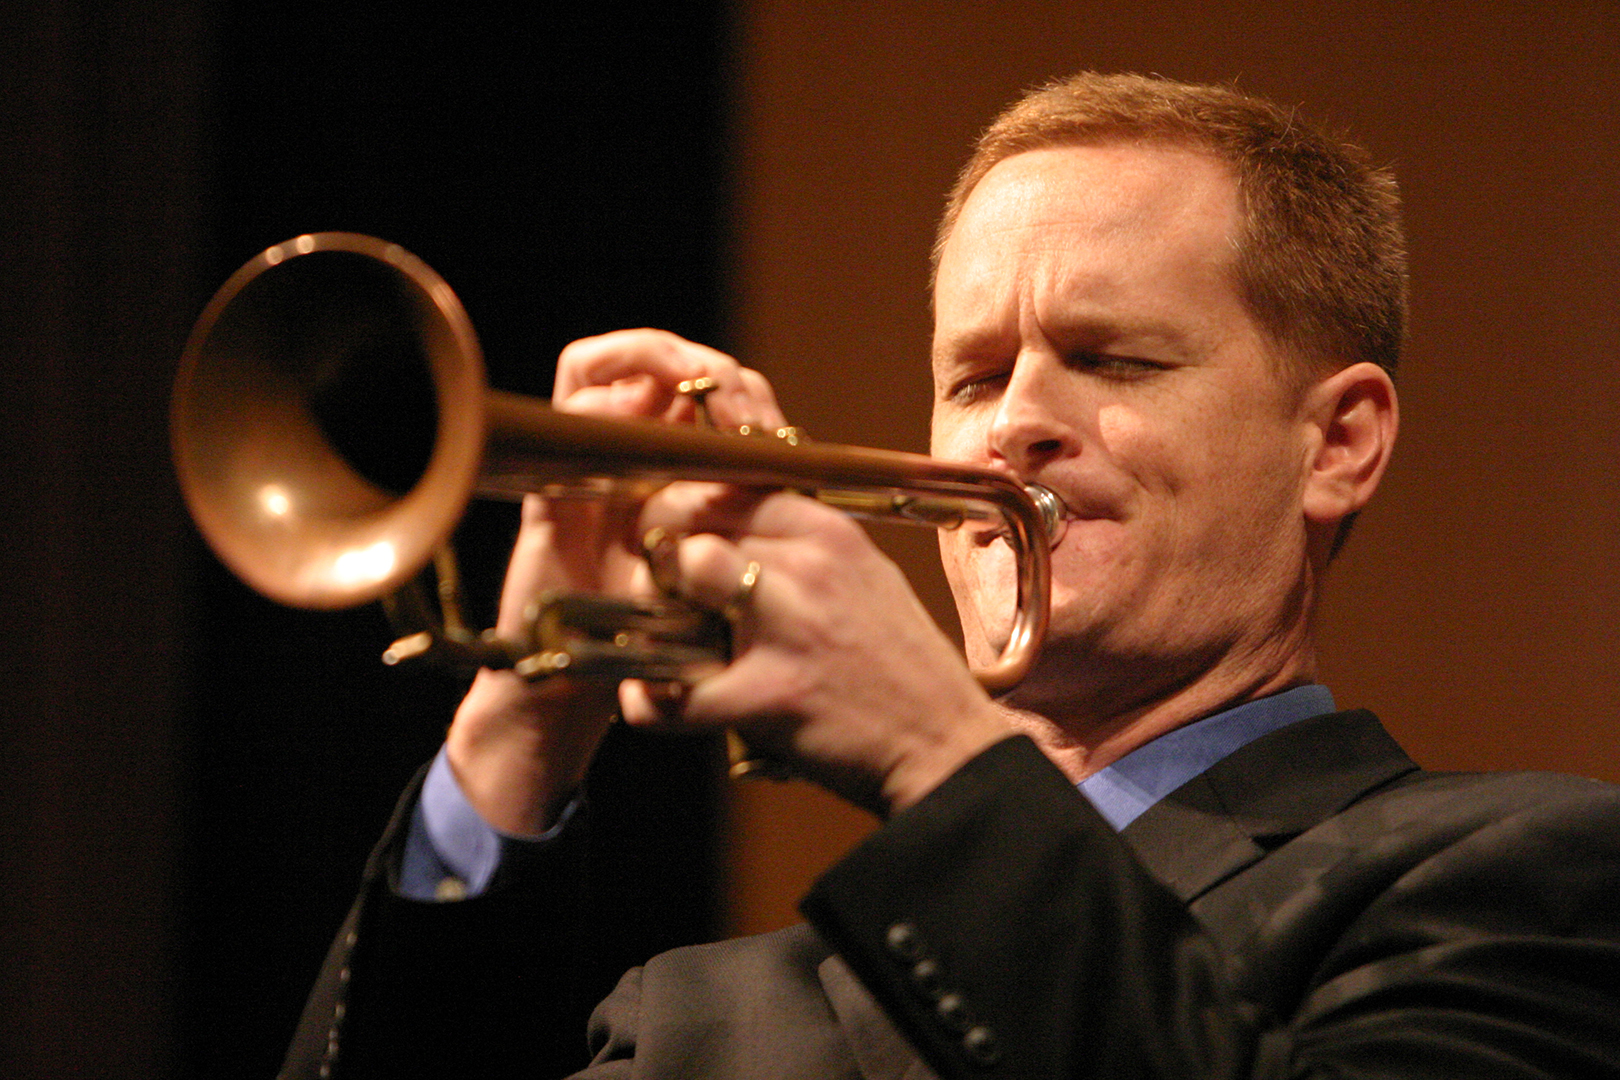 Graham Breedlove playing Trumpet